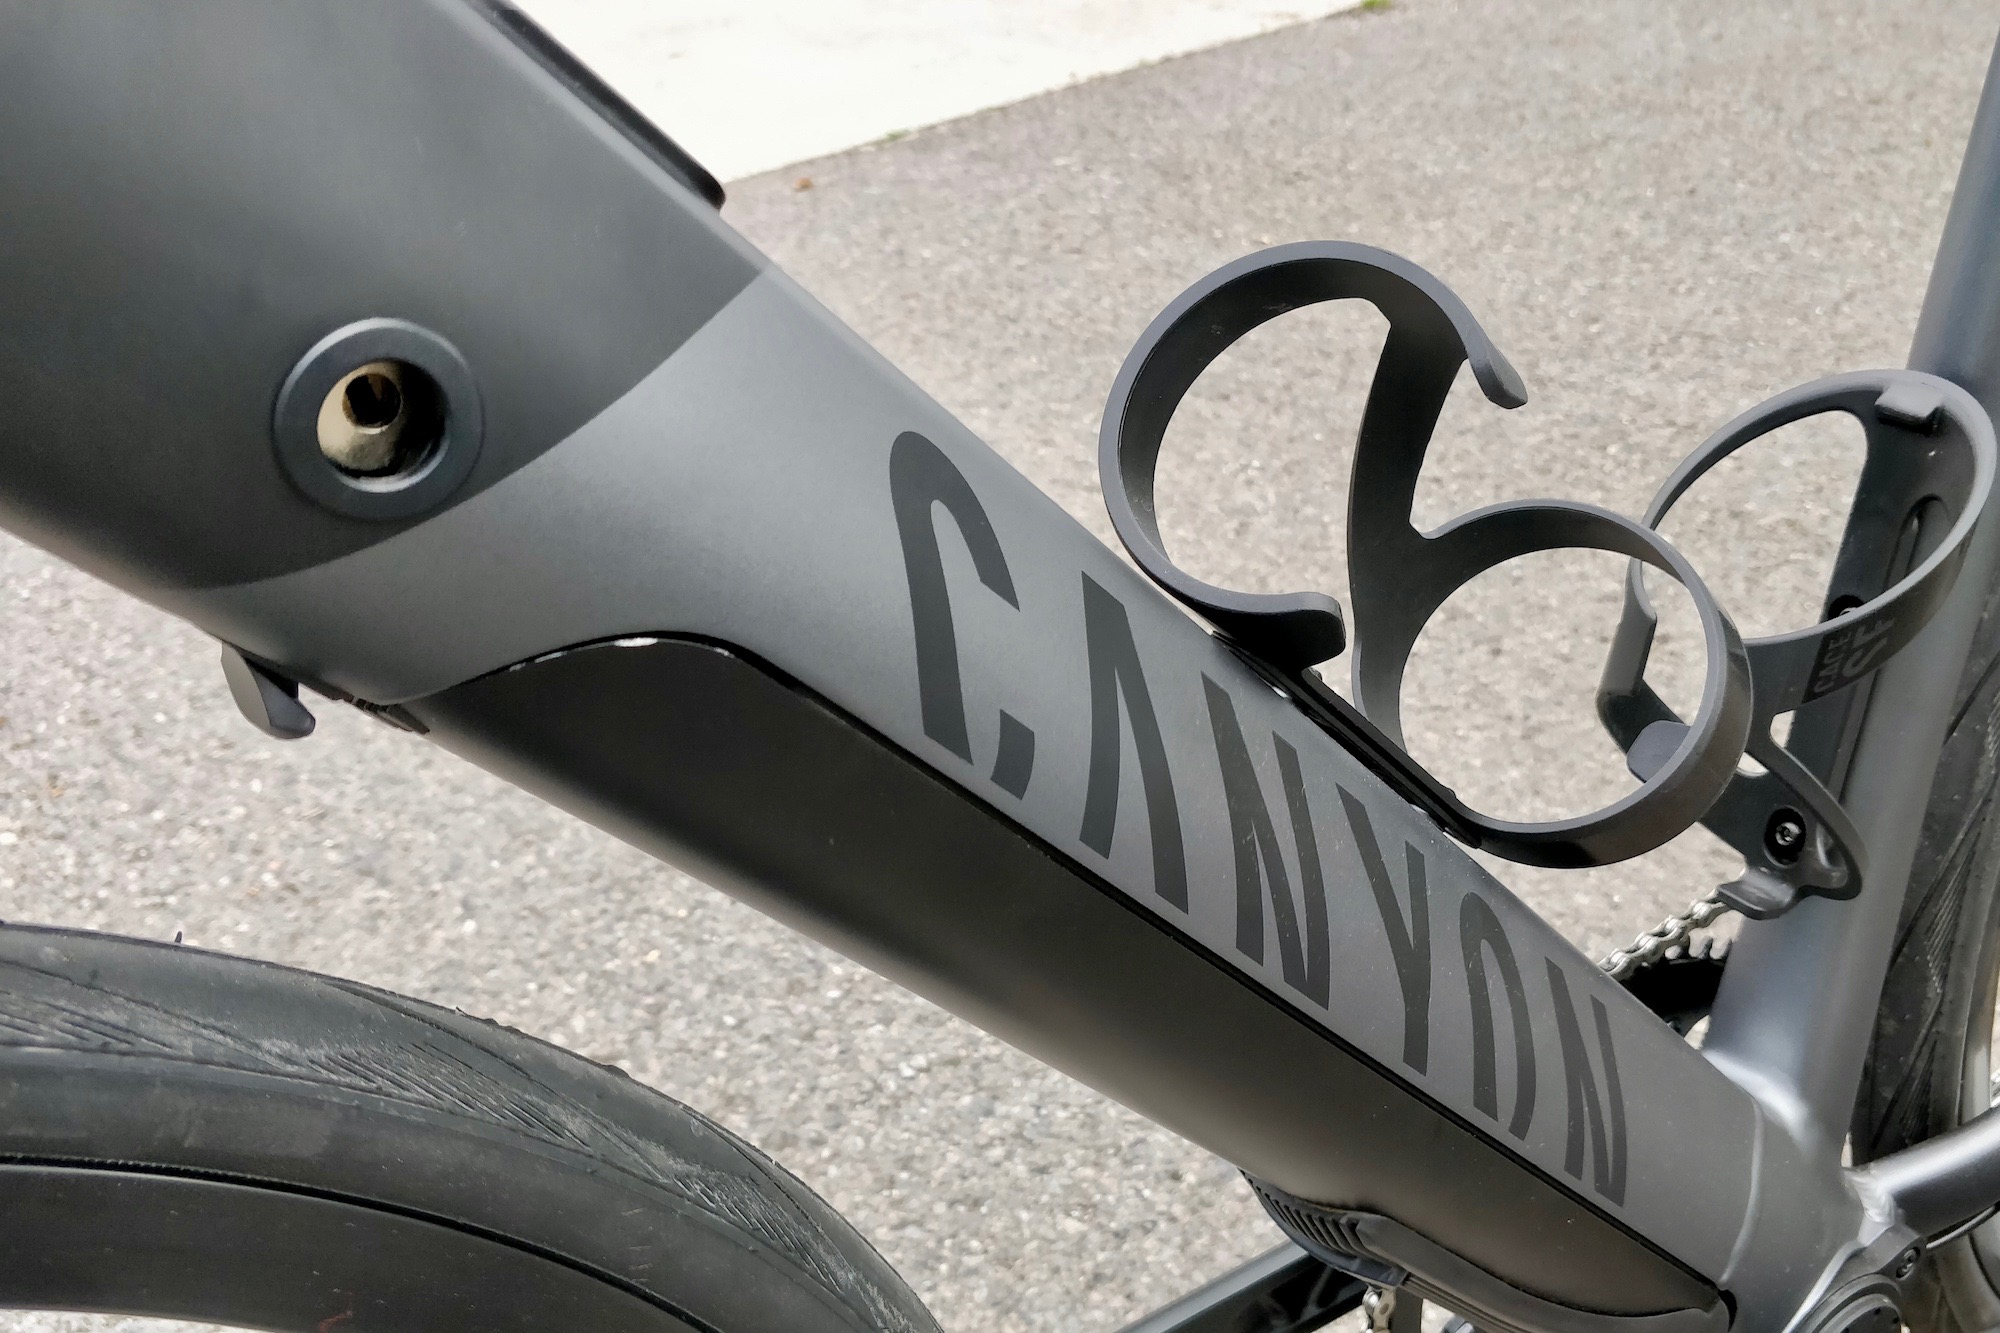 Canyon Endurace:ON 7.0 review - Cycling Weekly